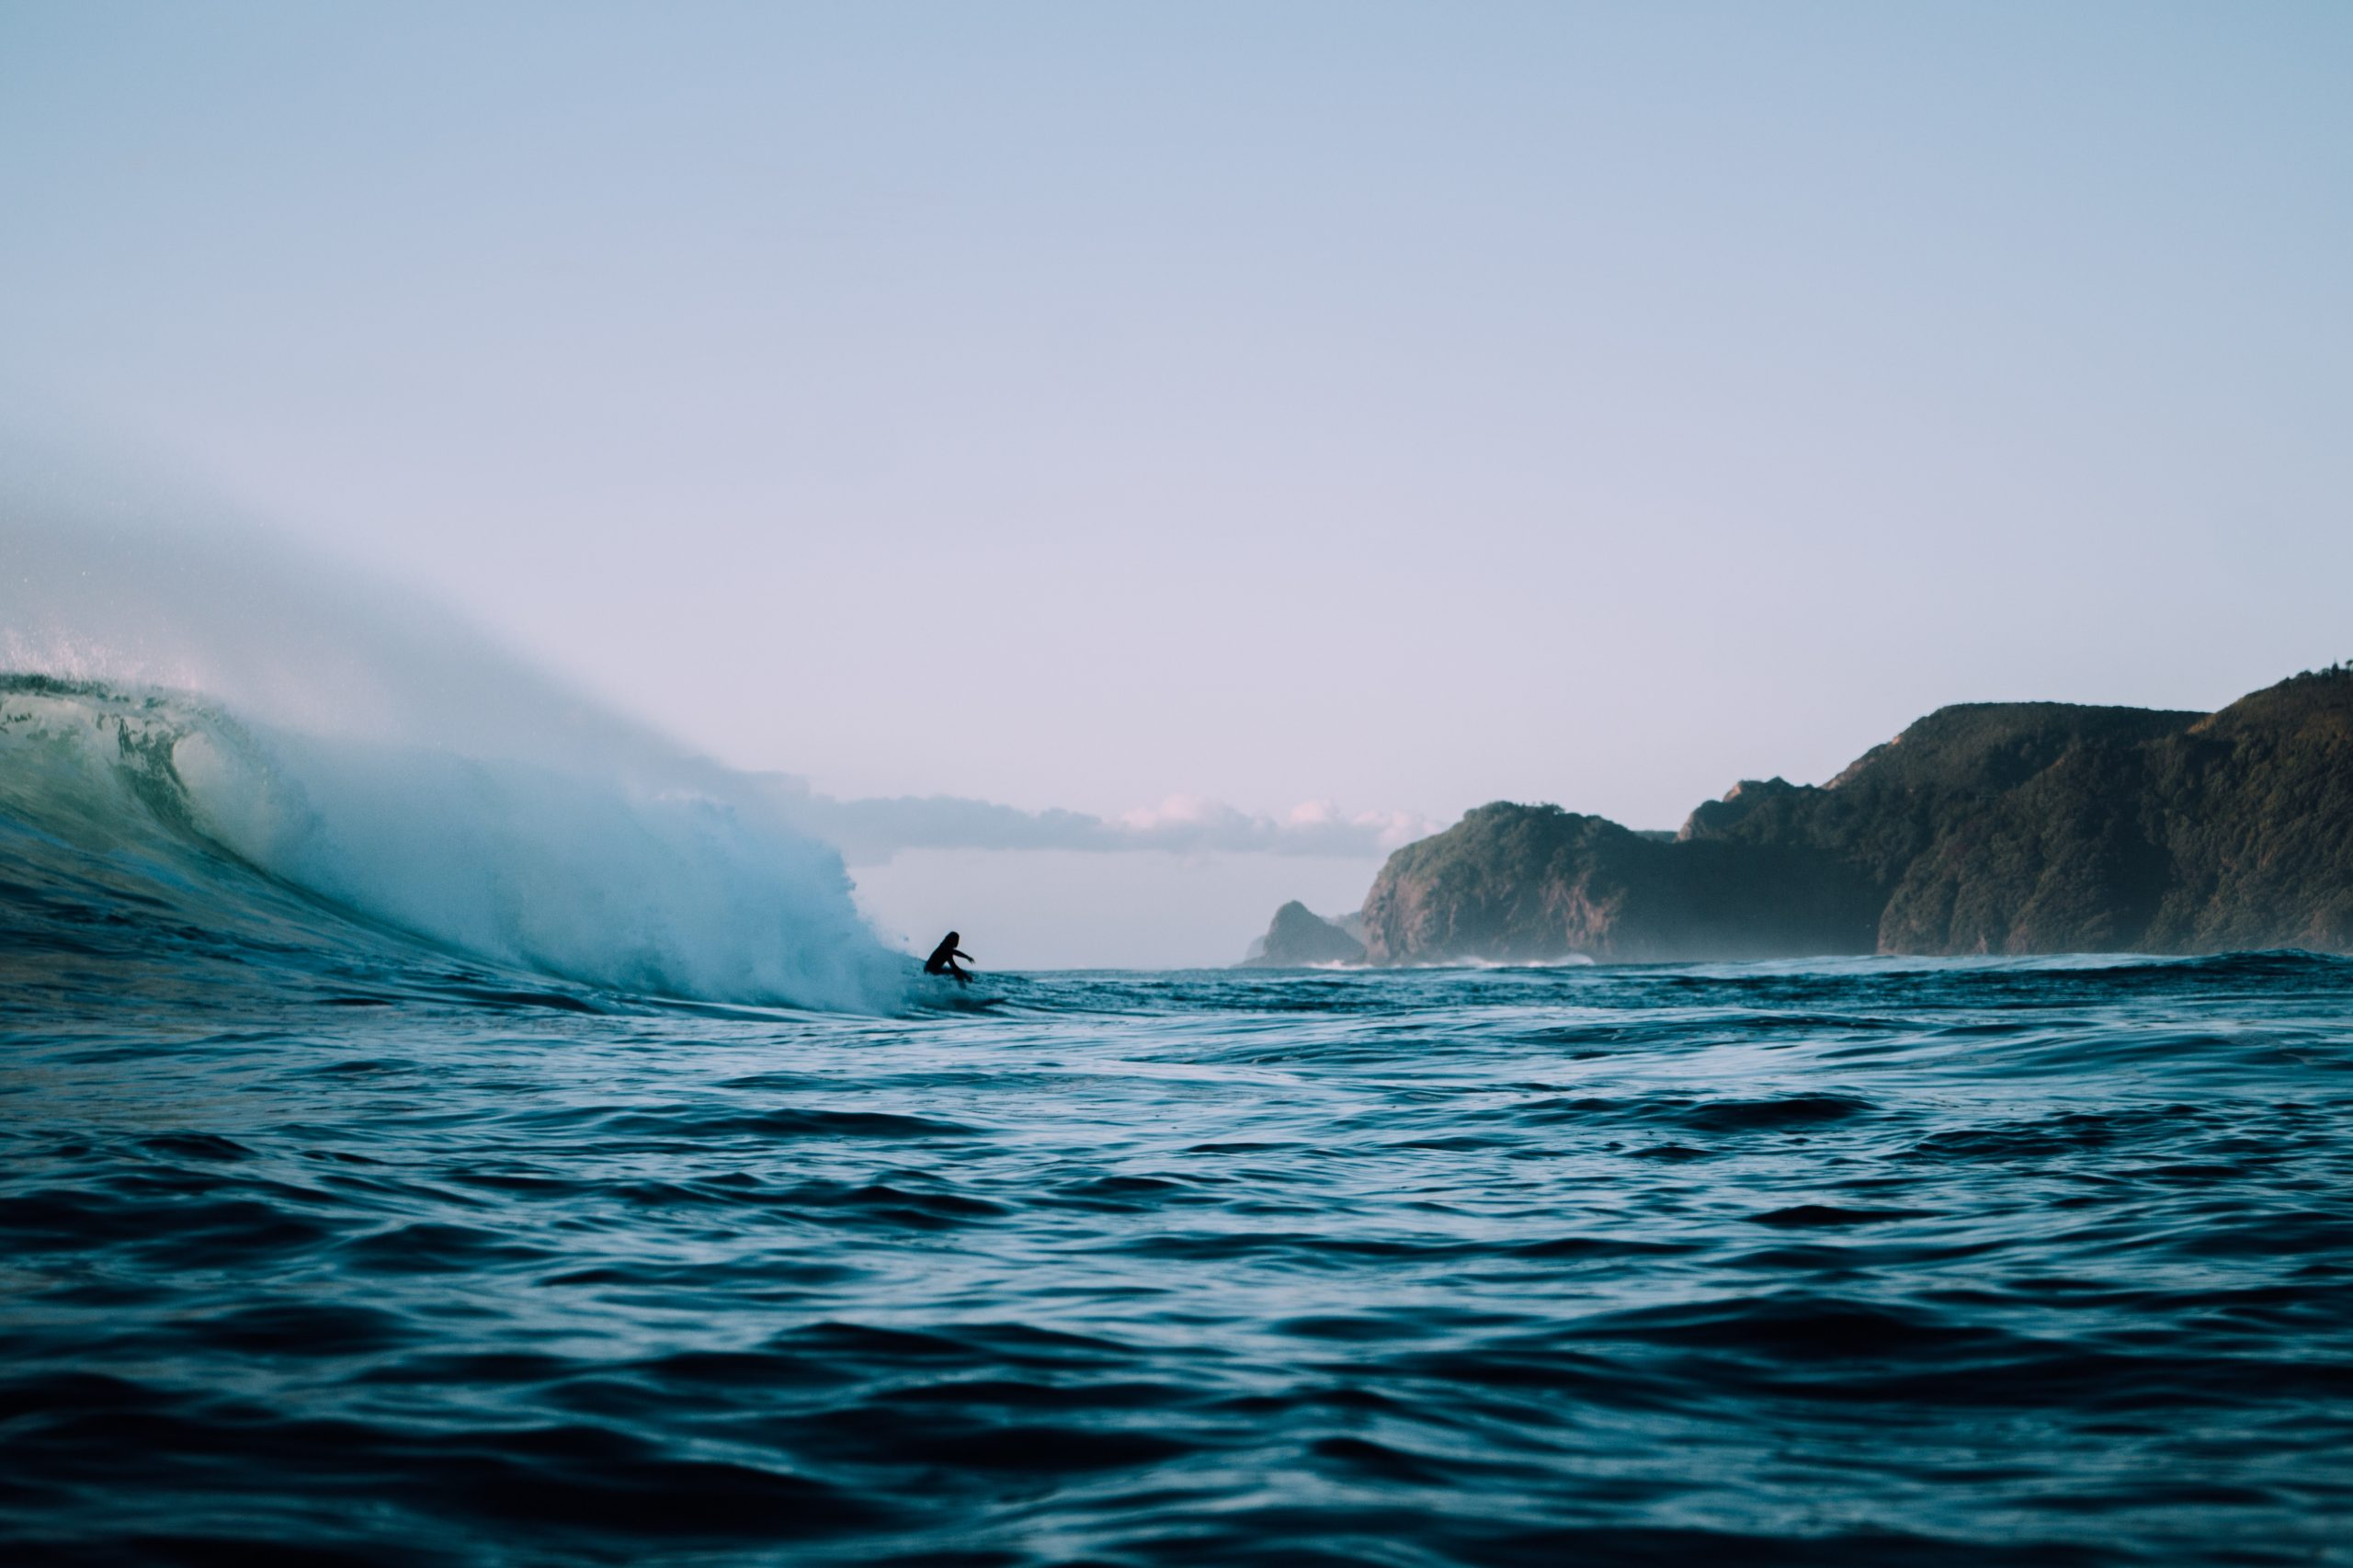 wave sea ocean water ripple surfer surfing wallpaper beach wallpapers beach background coast cliff crest surf summer mountain man beach wafe free images